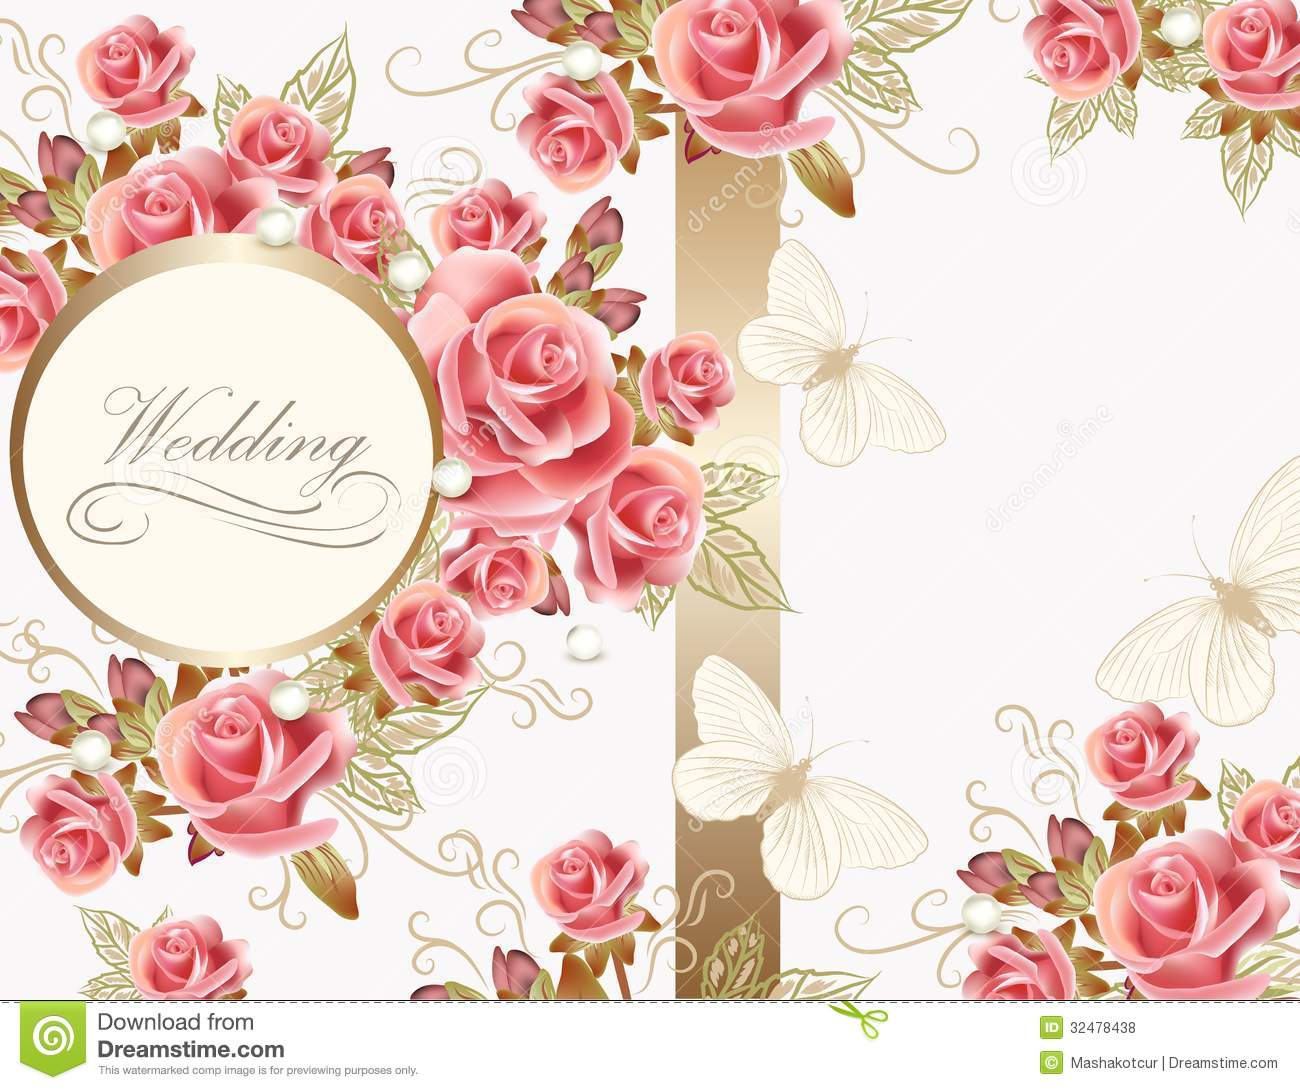 Wedding Greeting Card Design With Roses Stock Vector Illustration